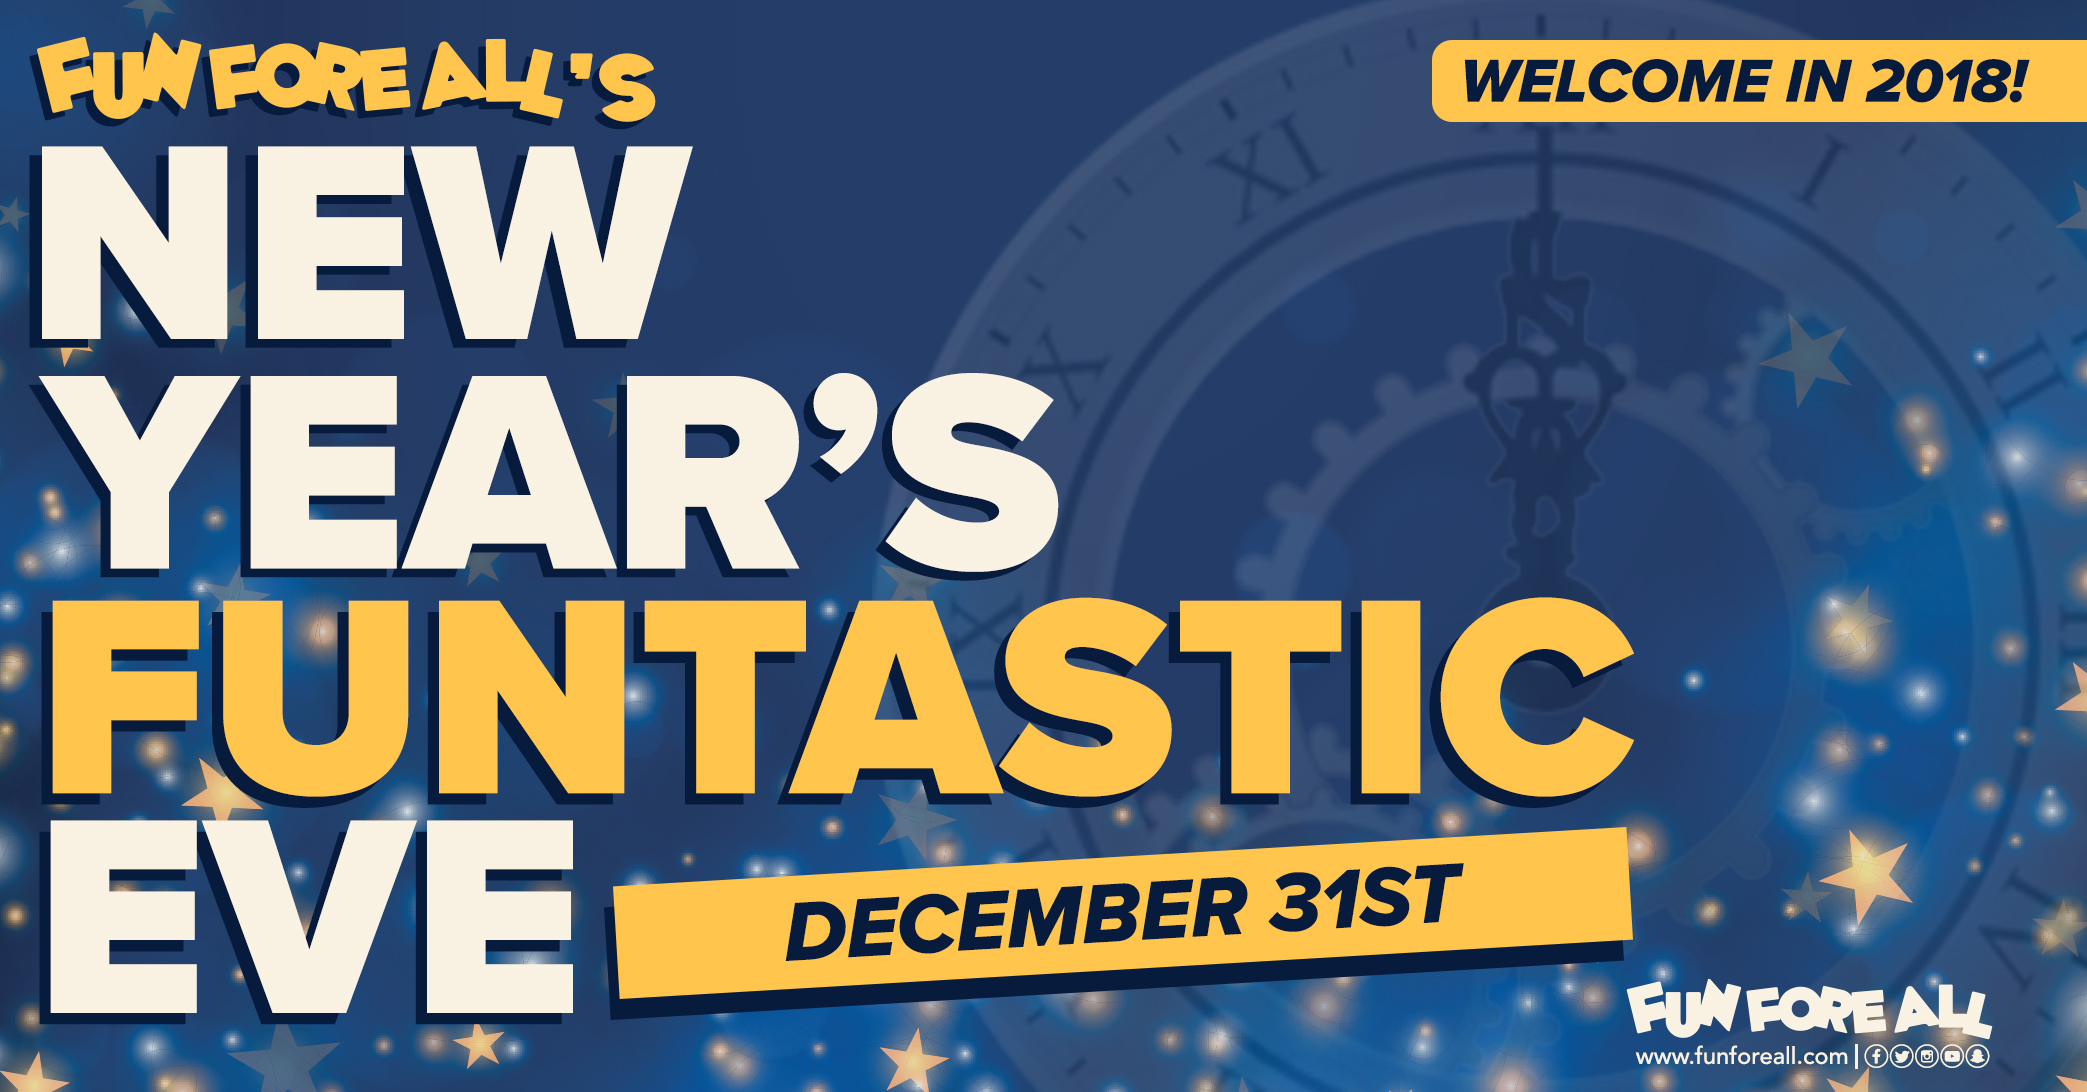 NEW YEAR'S FUNTASTIC  EVE INVITE BANNER (2017)